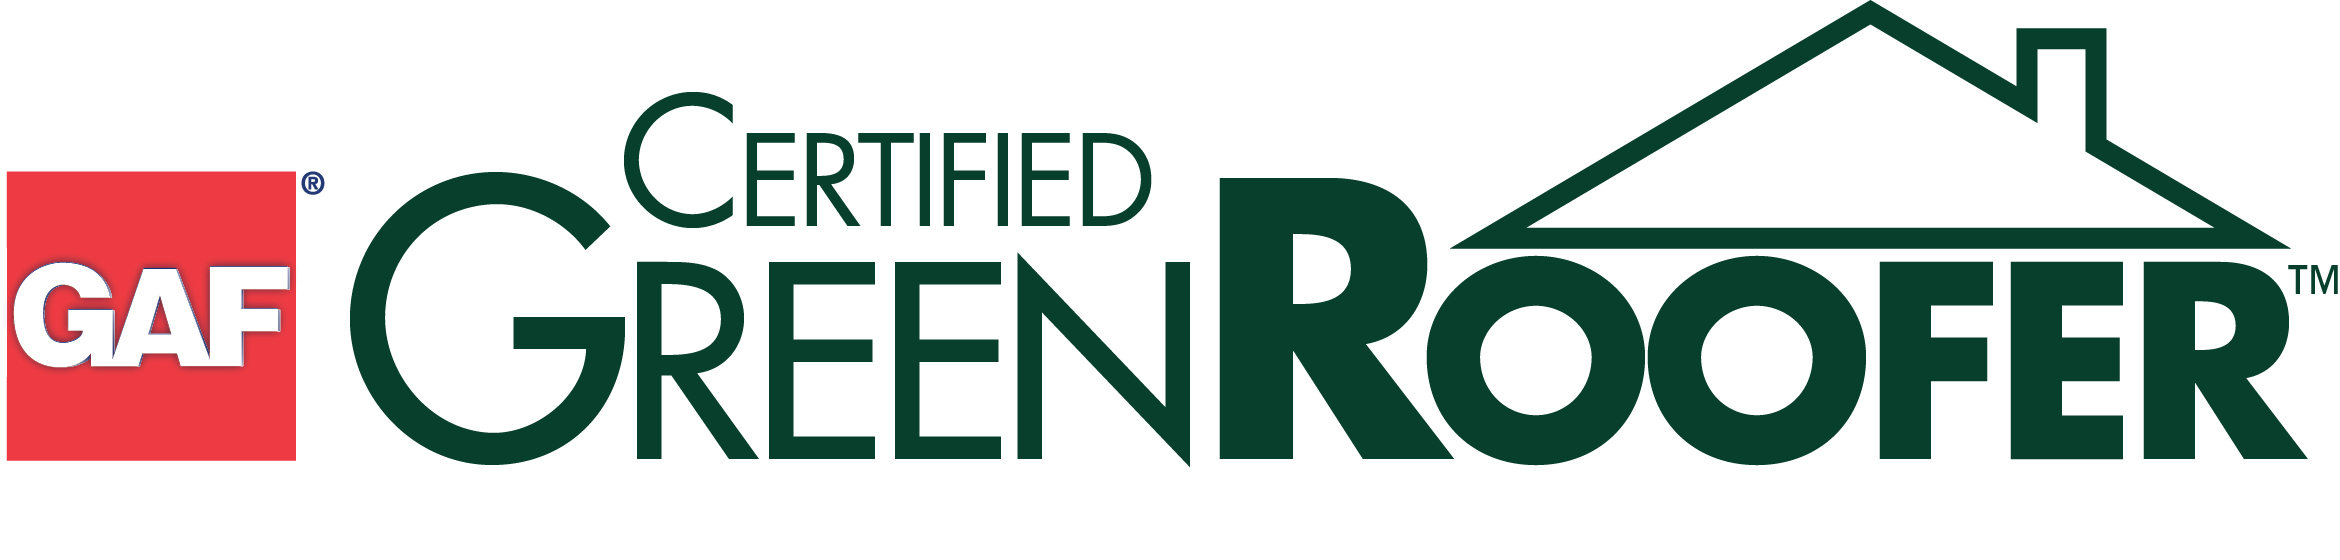 Certified Green Roofing Contractor